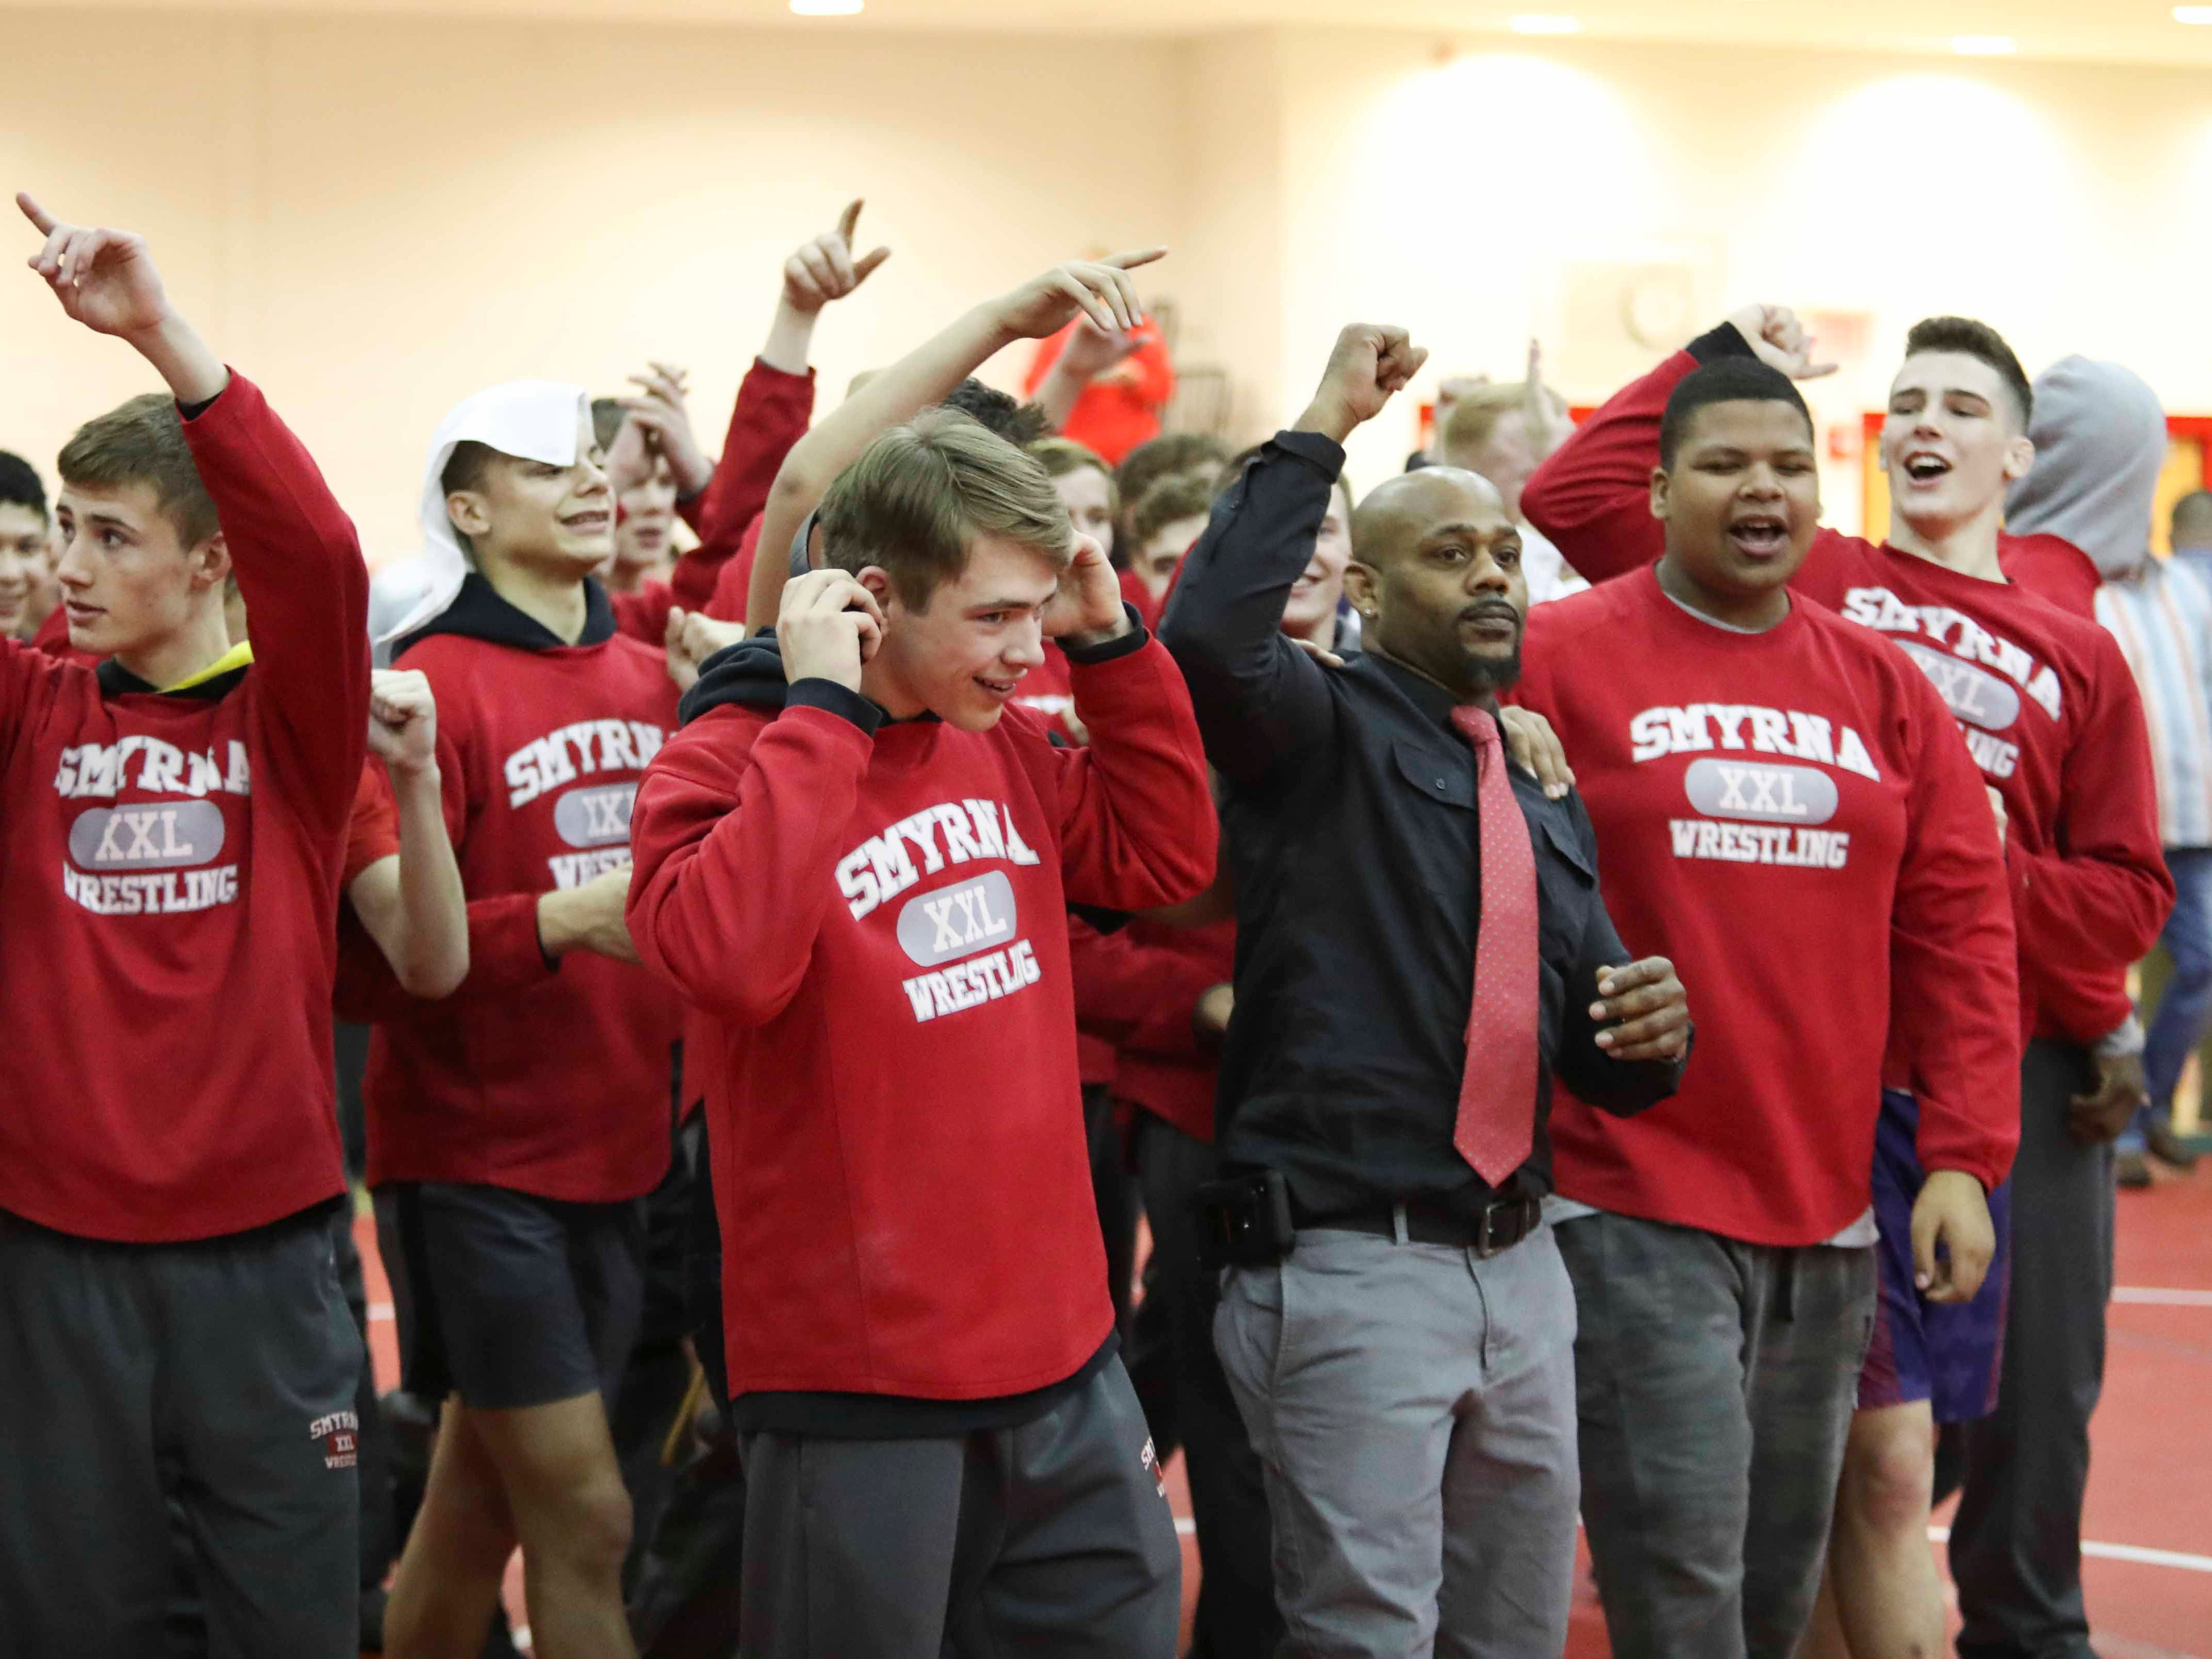 Smyrna, lead by coach Aaron Harris cheers after winning the DIAA Division I dual meet championship in the final round versus Caesar Rodney Saturday at Smyrna High School.